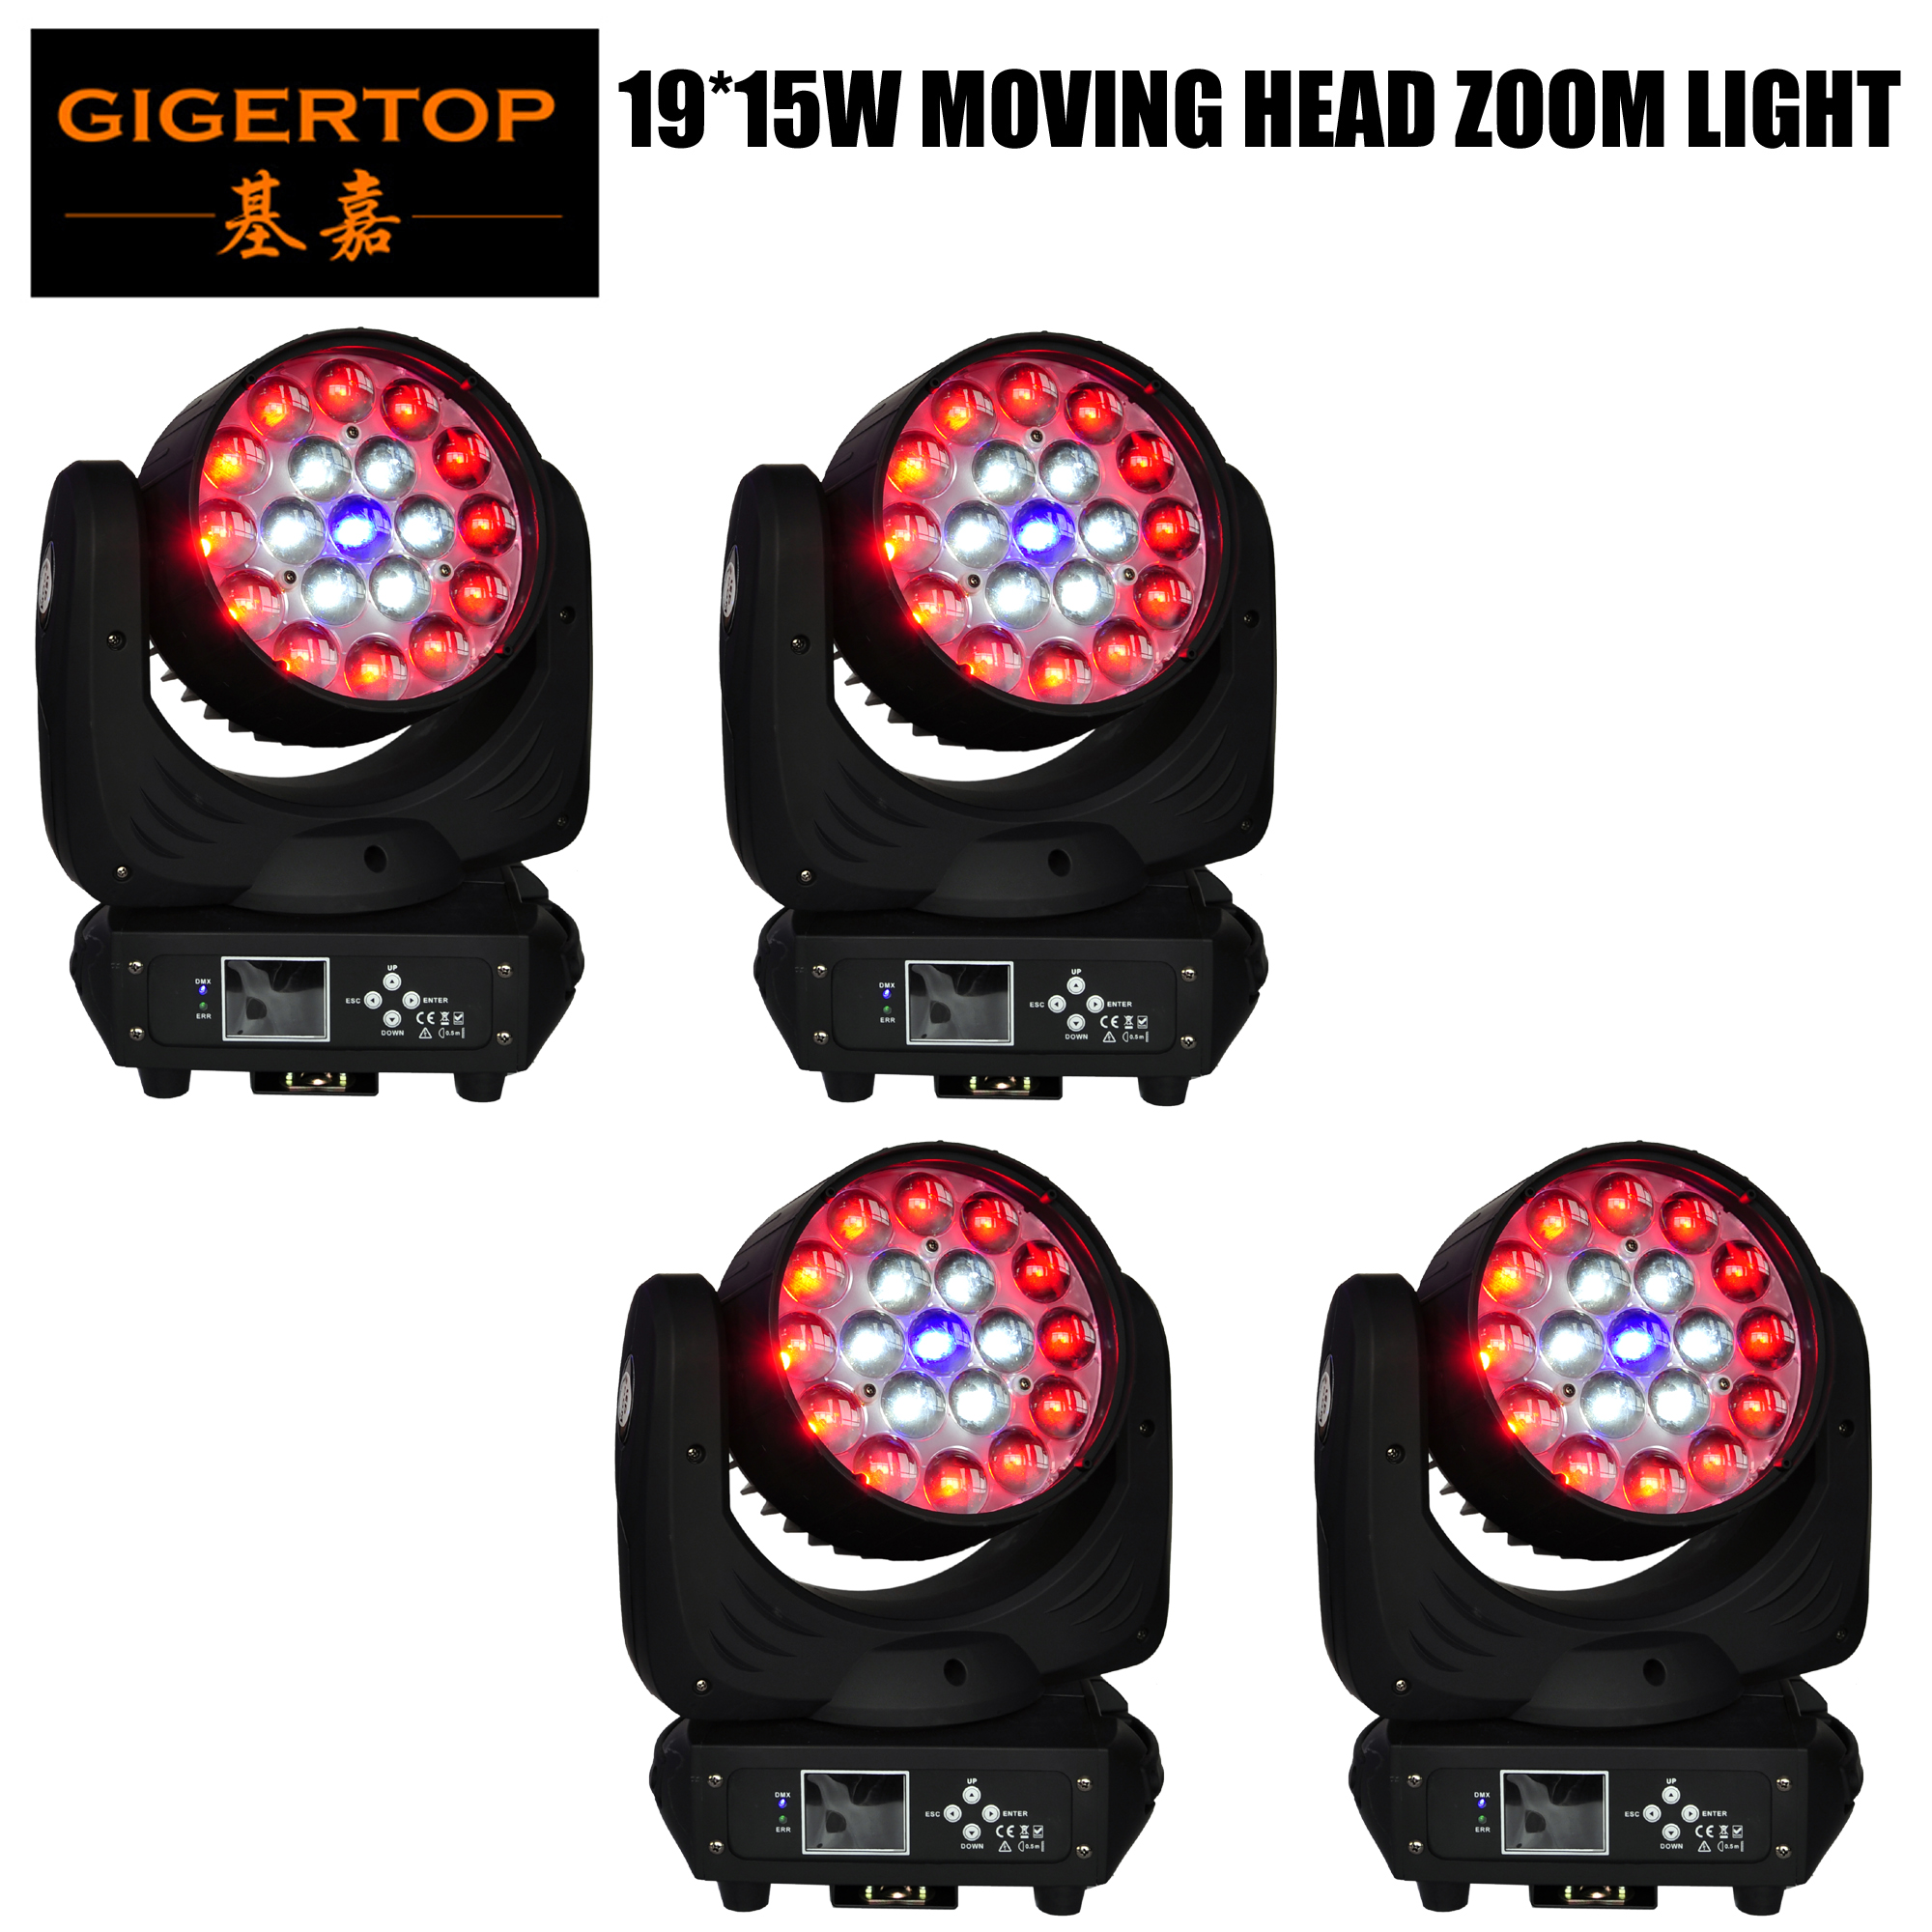 TIPTOP 19 X 15W 4 Color Zoom Led Moving Head Zoom Light Beam Wash Angle Adjustable 13/24 DMX Channel Color Ring Control X 2 Pack